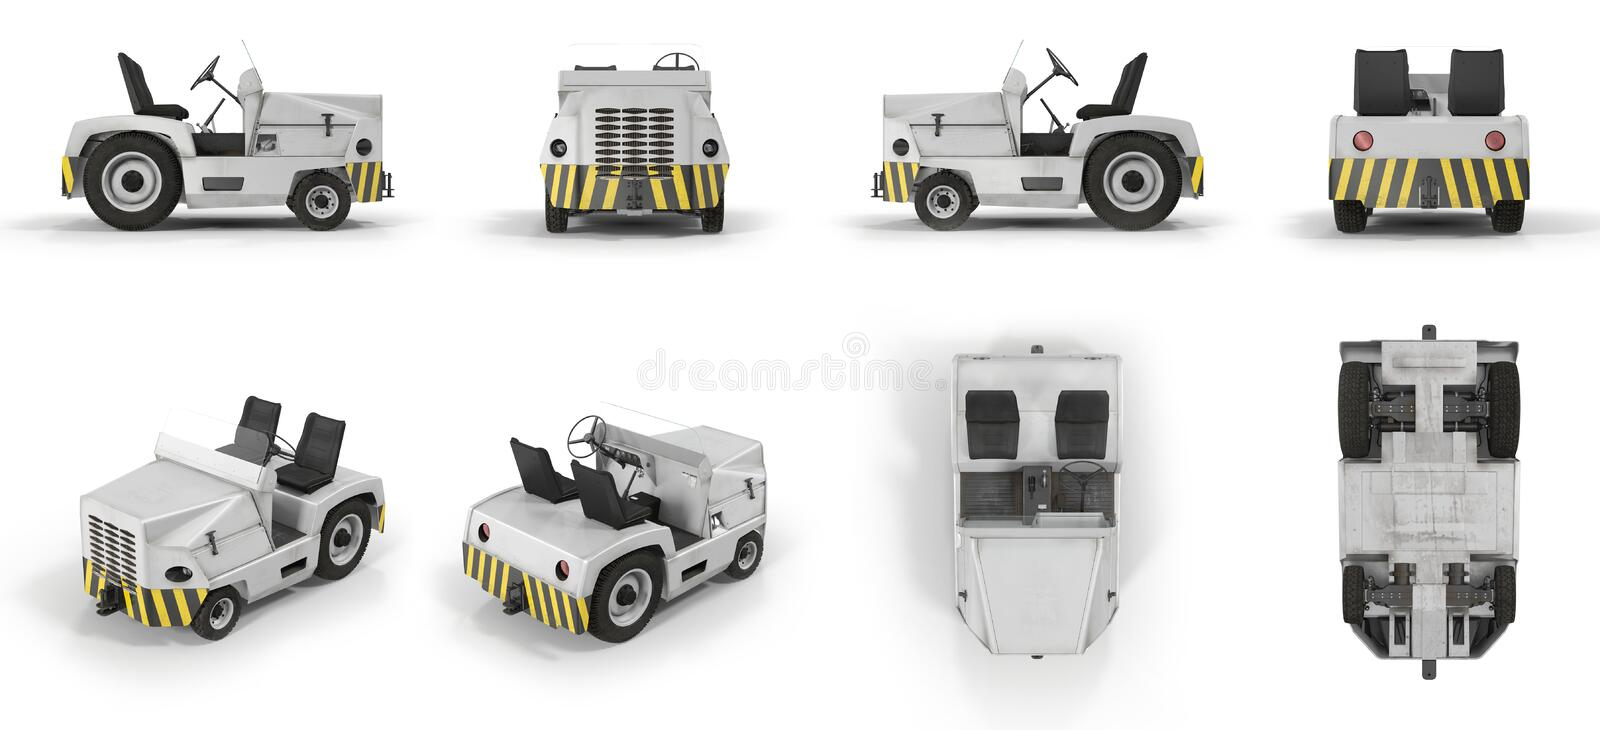 Aircraft Towing Tractor renders set from different angles on a white. 3D illustration. Aircraft Towing Tractor renders set from different angles on a white royalty free illustration